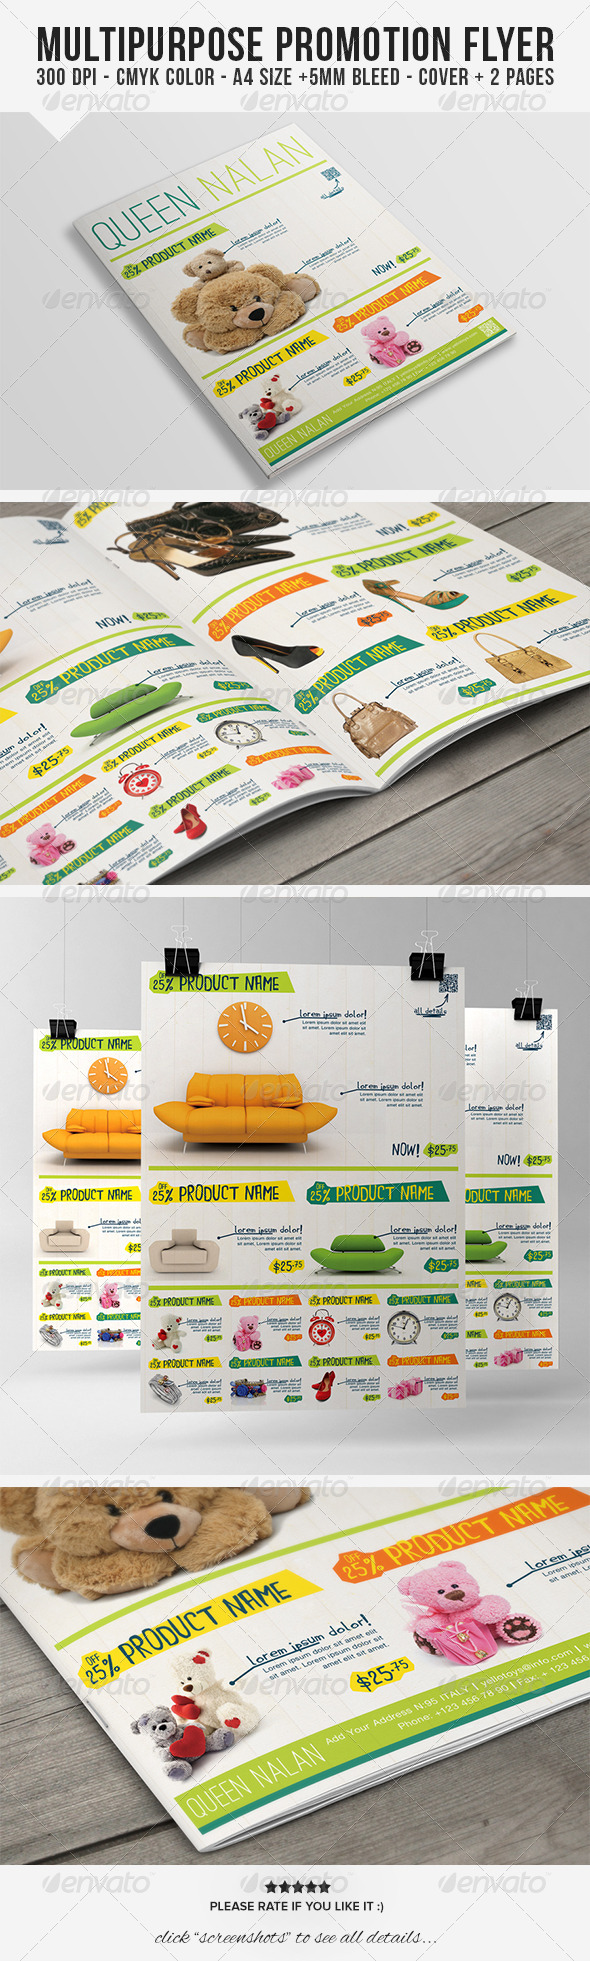 GraphicRiver Multipurpose Product Promotion Flyer 6814102